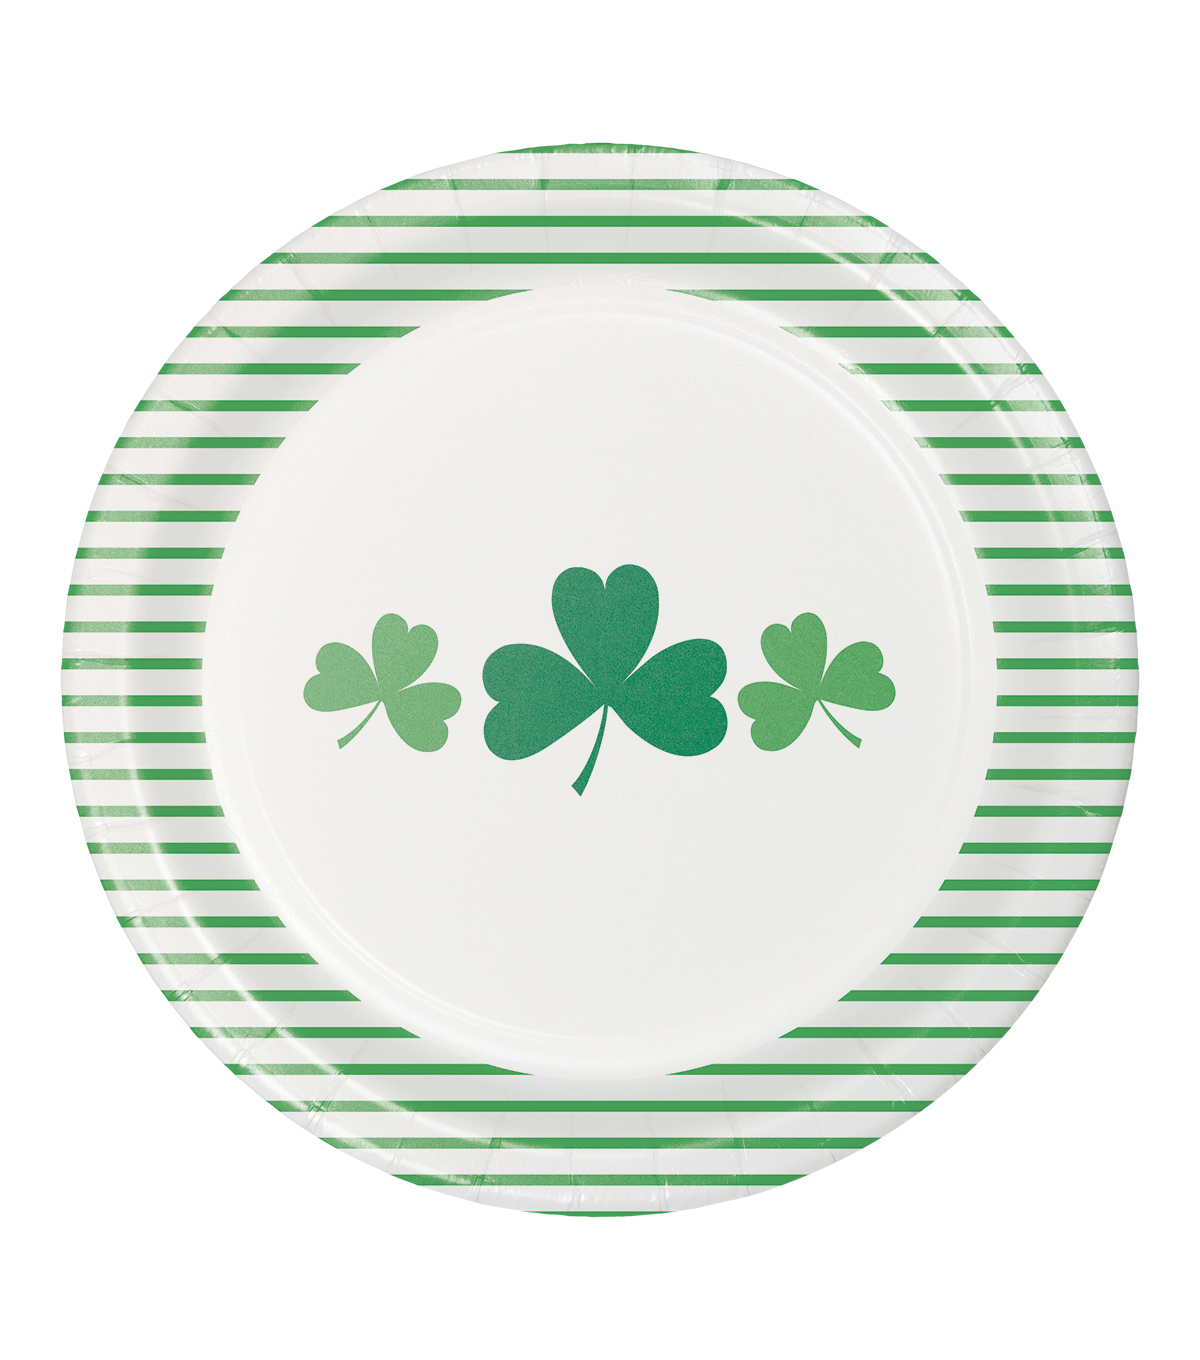 St. Patrick\u0027s Day Decor 8 pk Dinner Plates-Green Shamrocks & Stripes